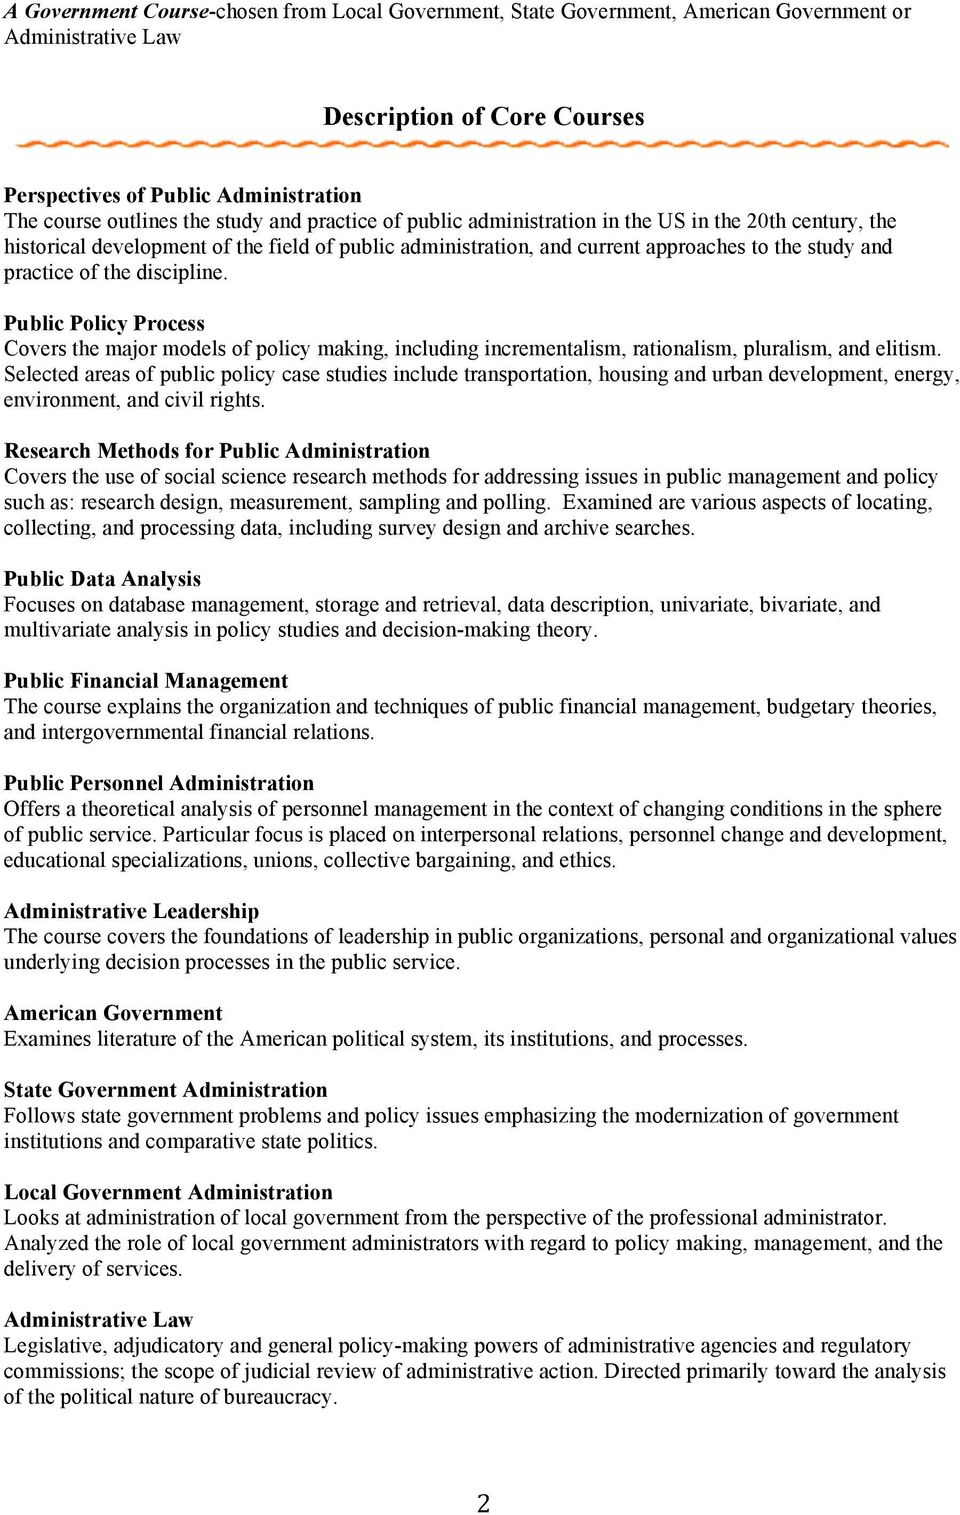 discipline. Public Policy Process Covers the major models of policy making, including incrementalism, rationalism, pluralism, and elitism.